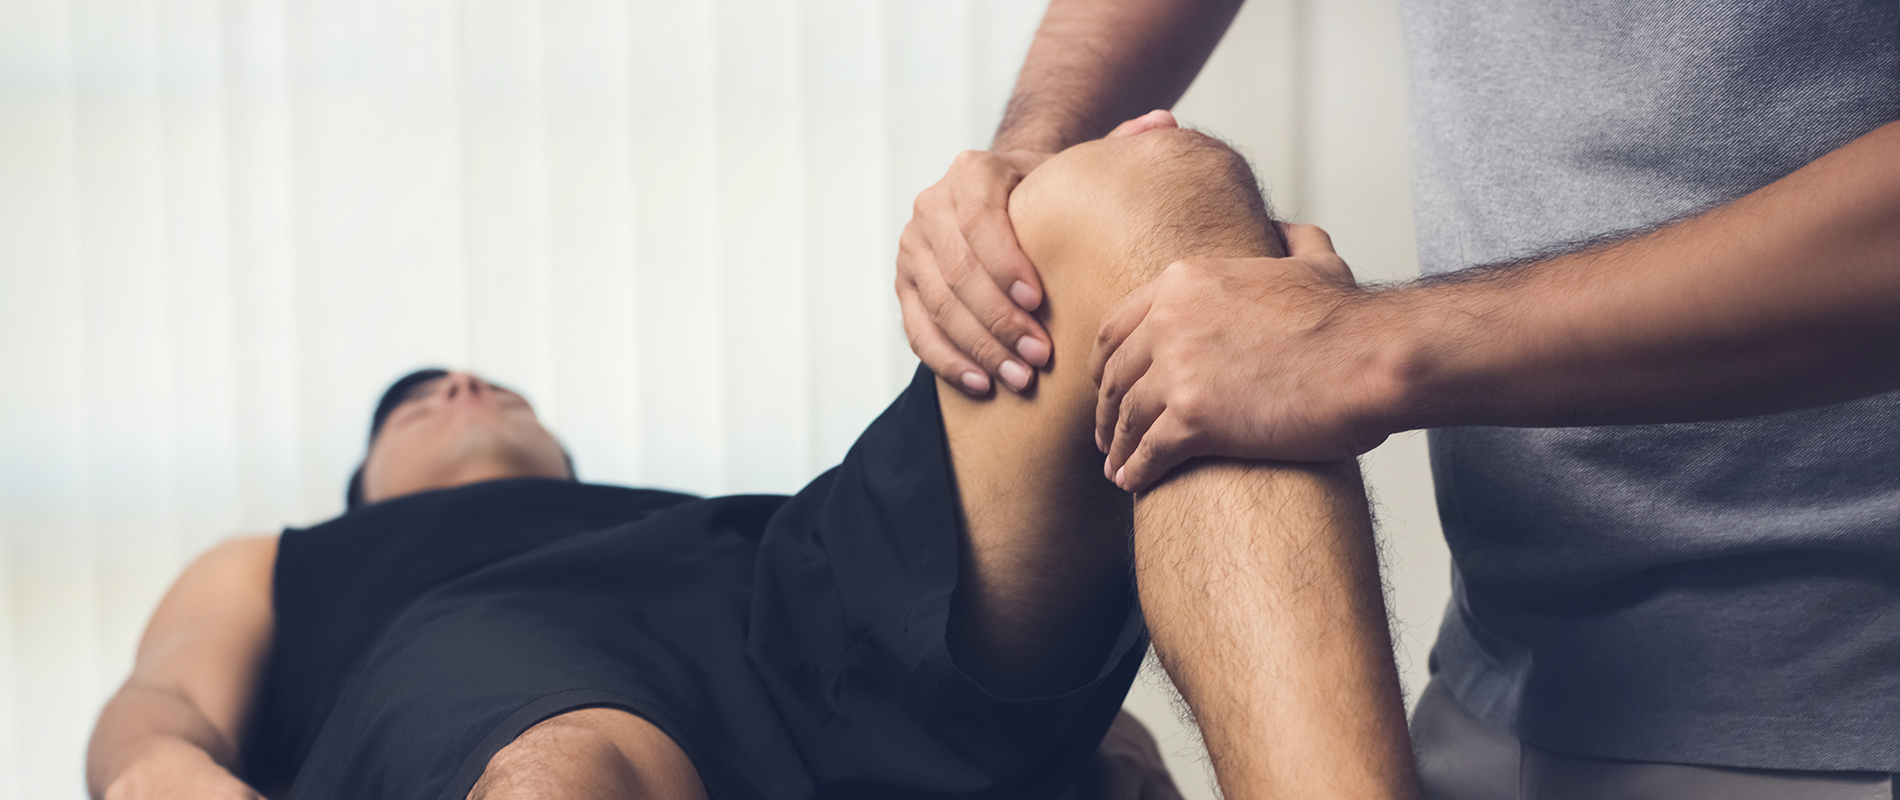 Physical therapist treating patient with knee pain following knee surgery